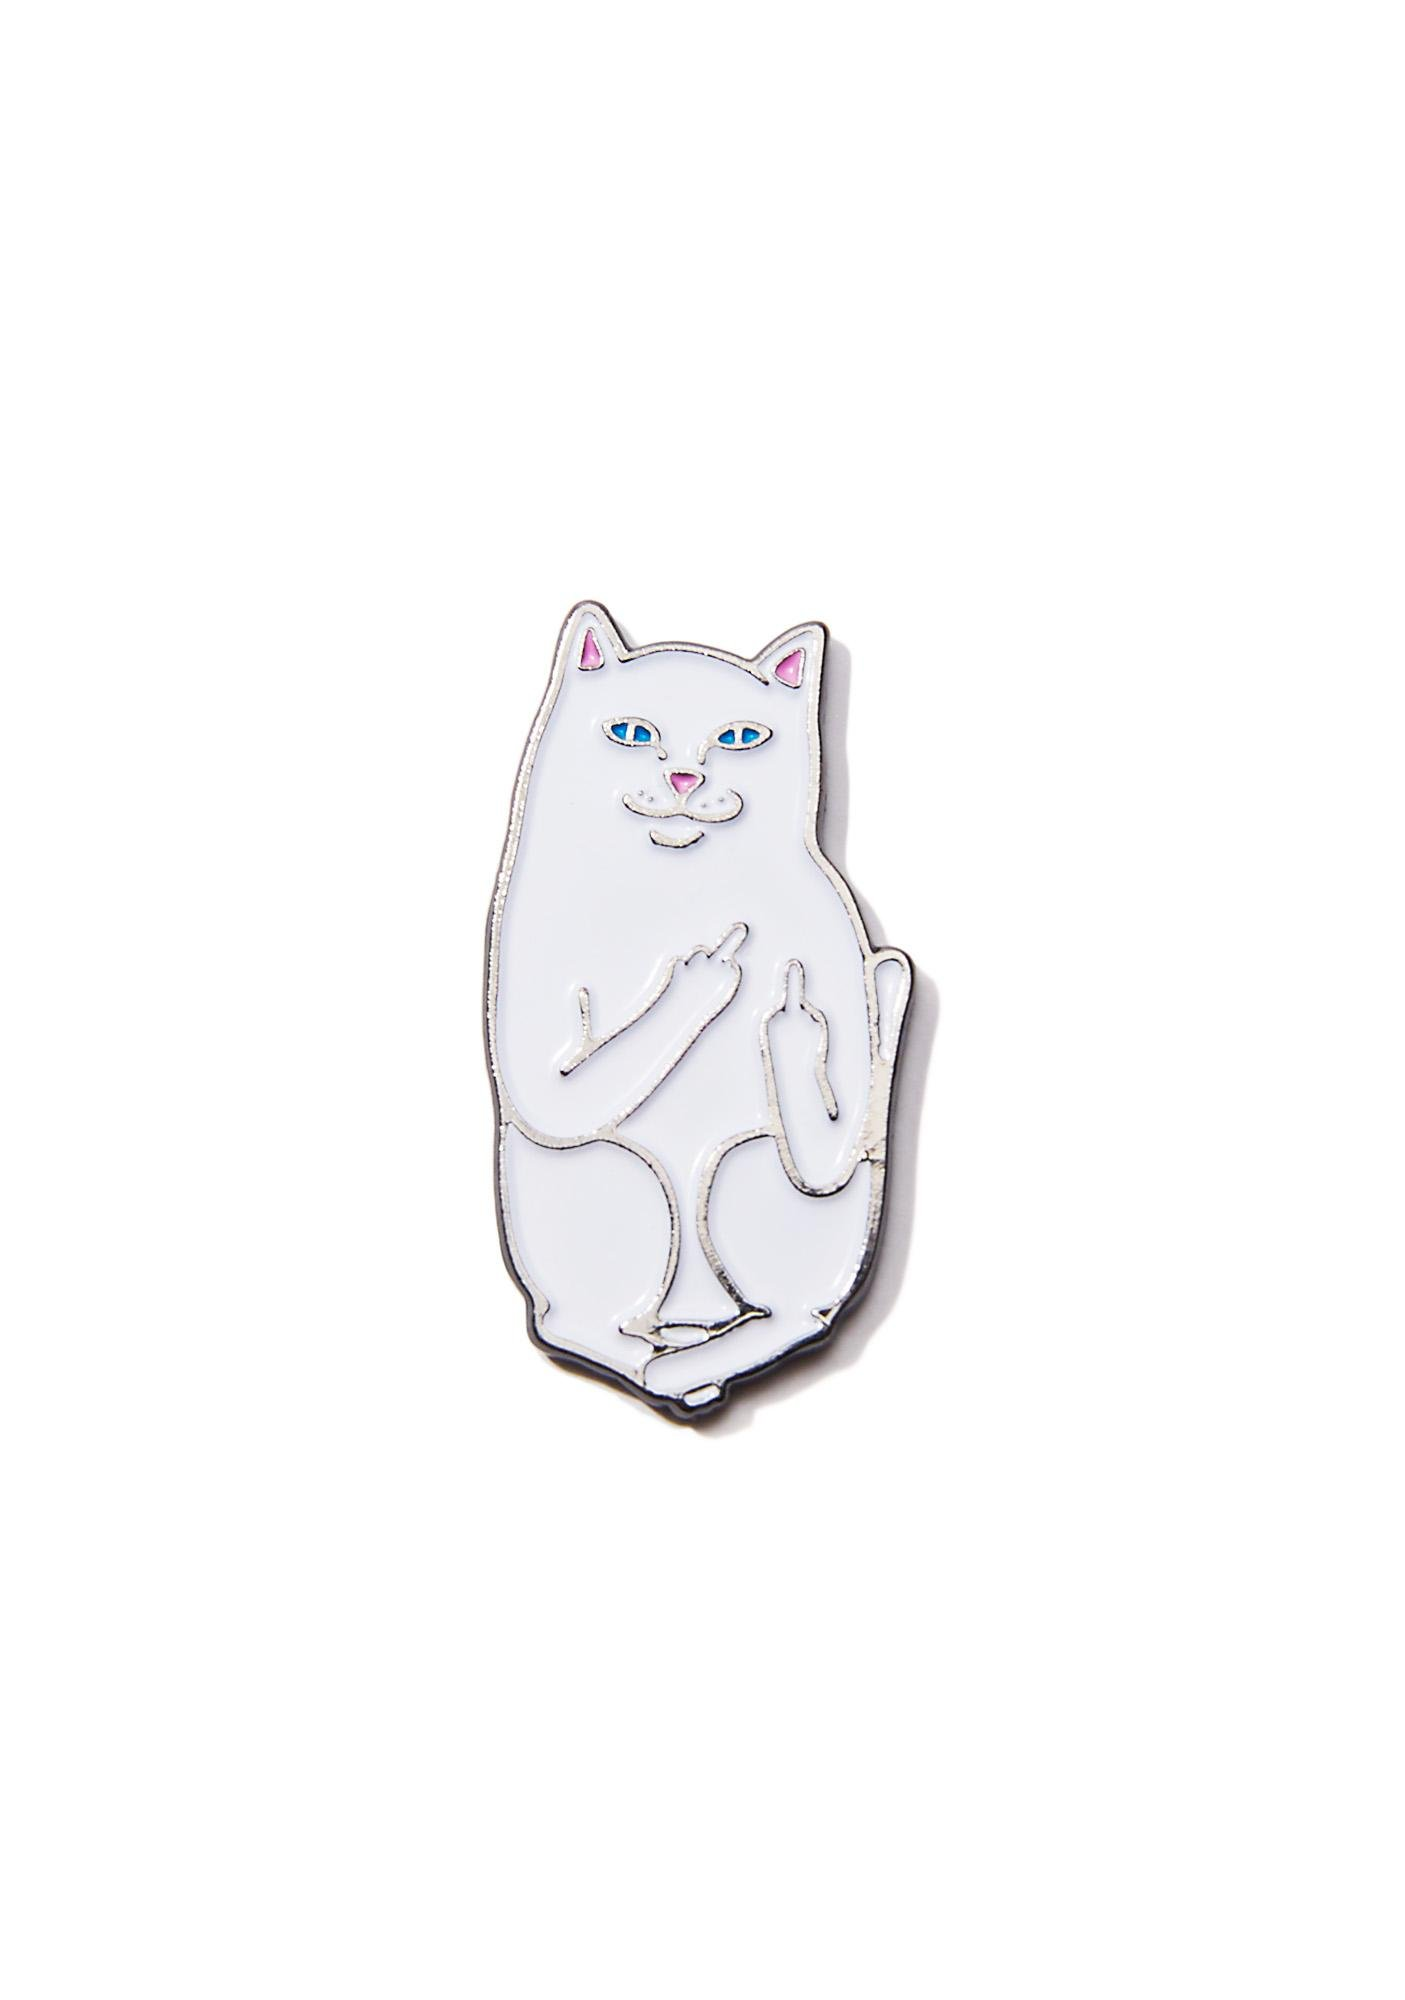 RIPNDIP Falling Lord Nermal Pin